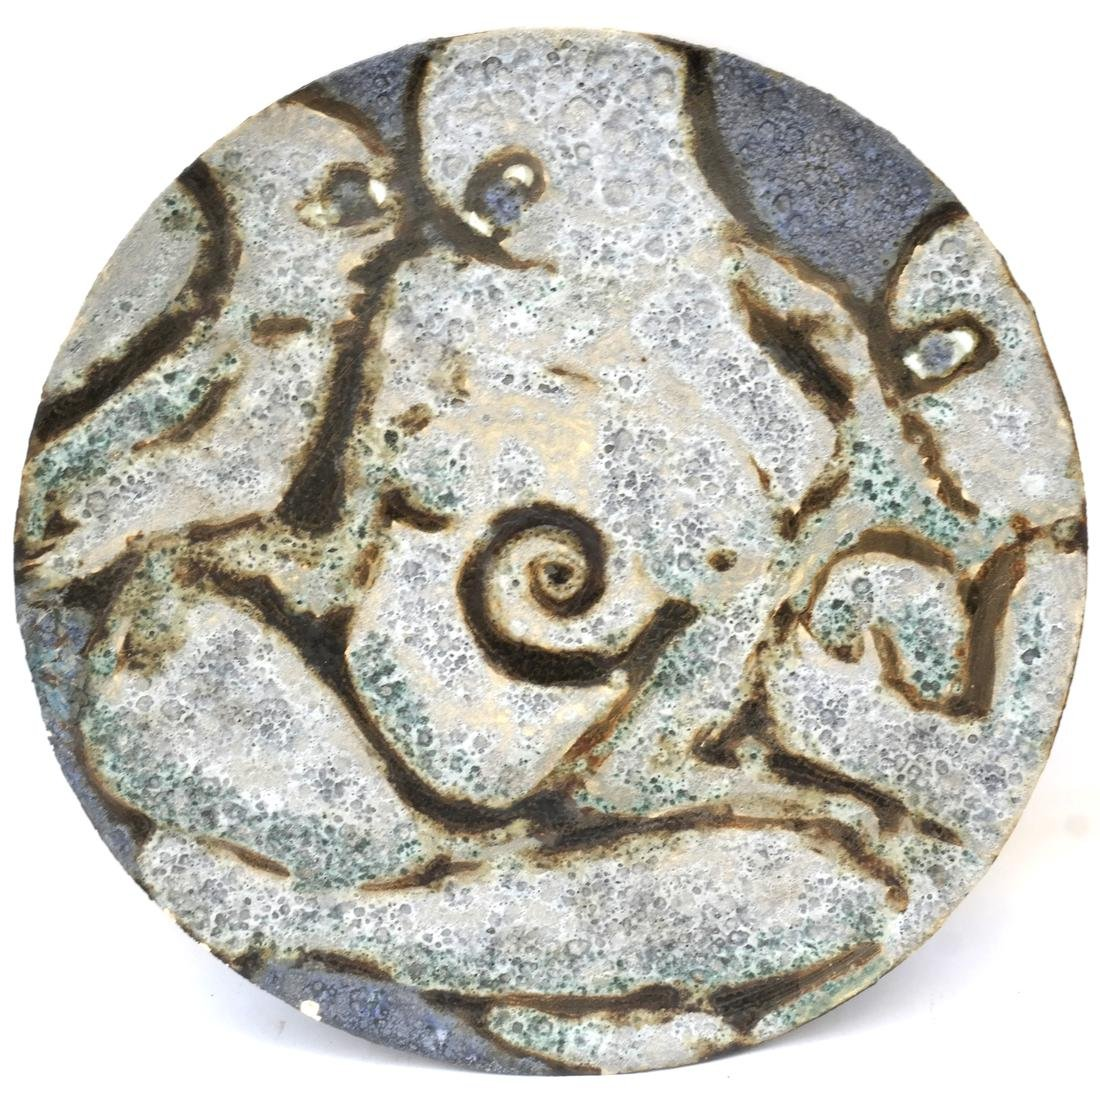 Mark Chatterley, Abstract on Ceramic